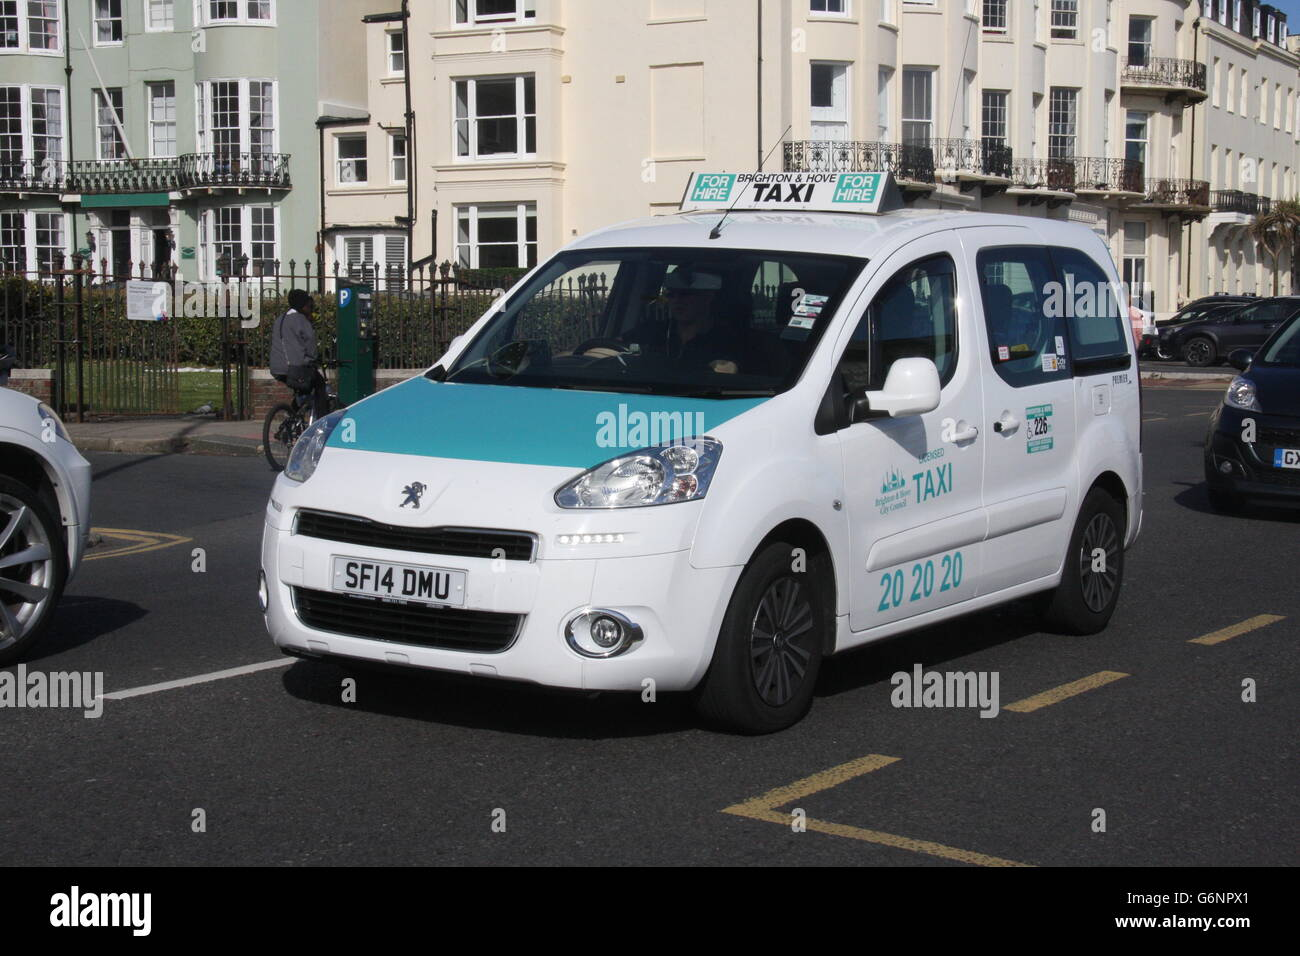 A SUNNY NEARSIDE VIEW OF A PEUGEOT TAXI CAB IN BRIGHTON - Stock Image